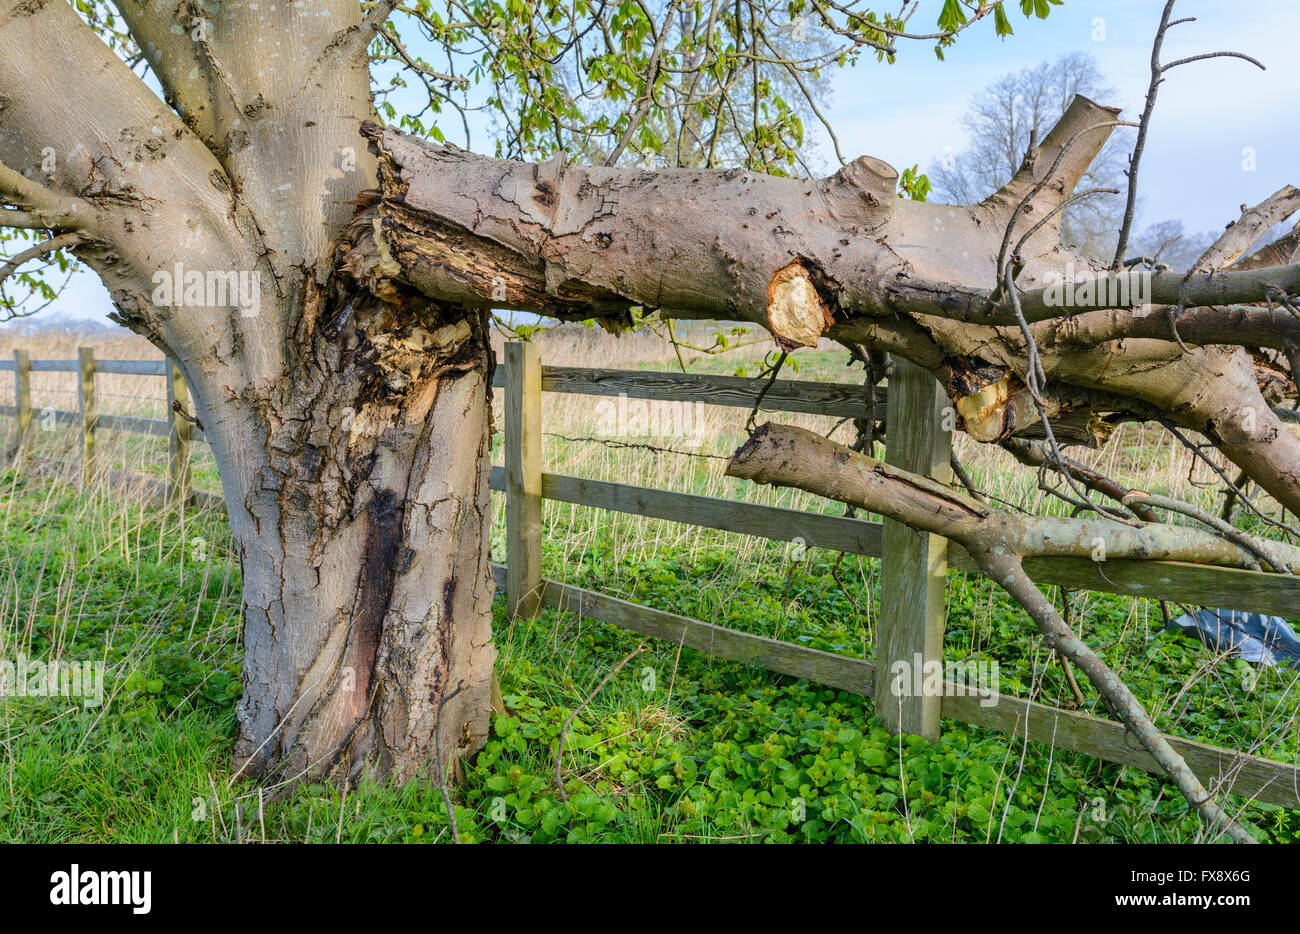 Damaged tree with branch broken off and breaking a wooden fence. - Stock Image